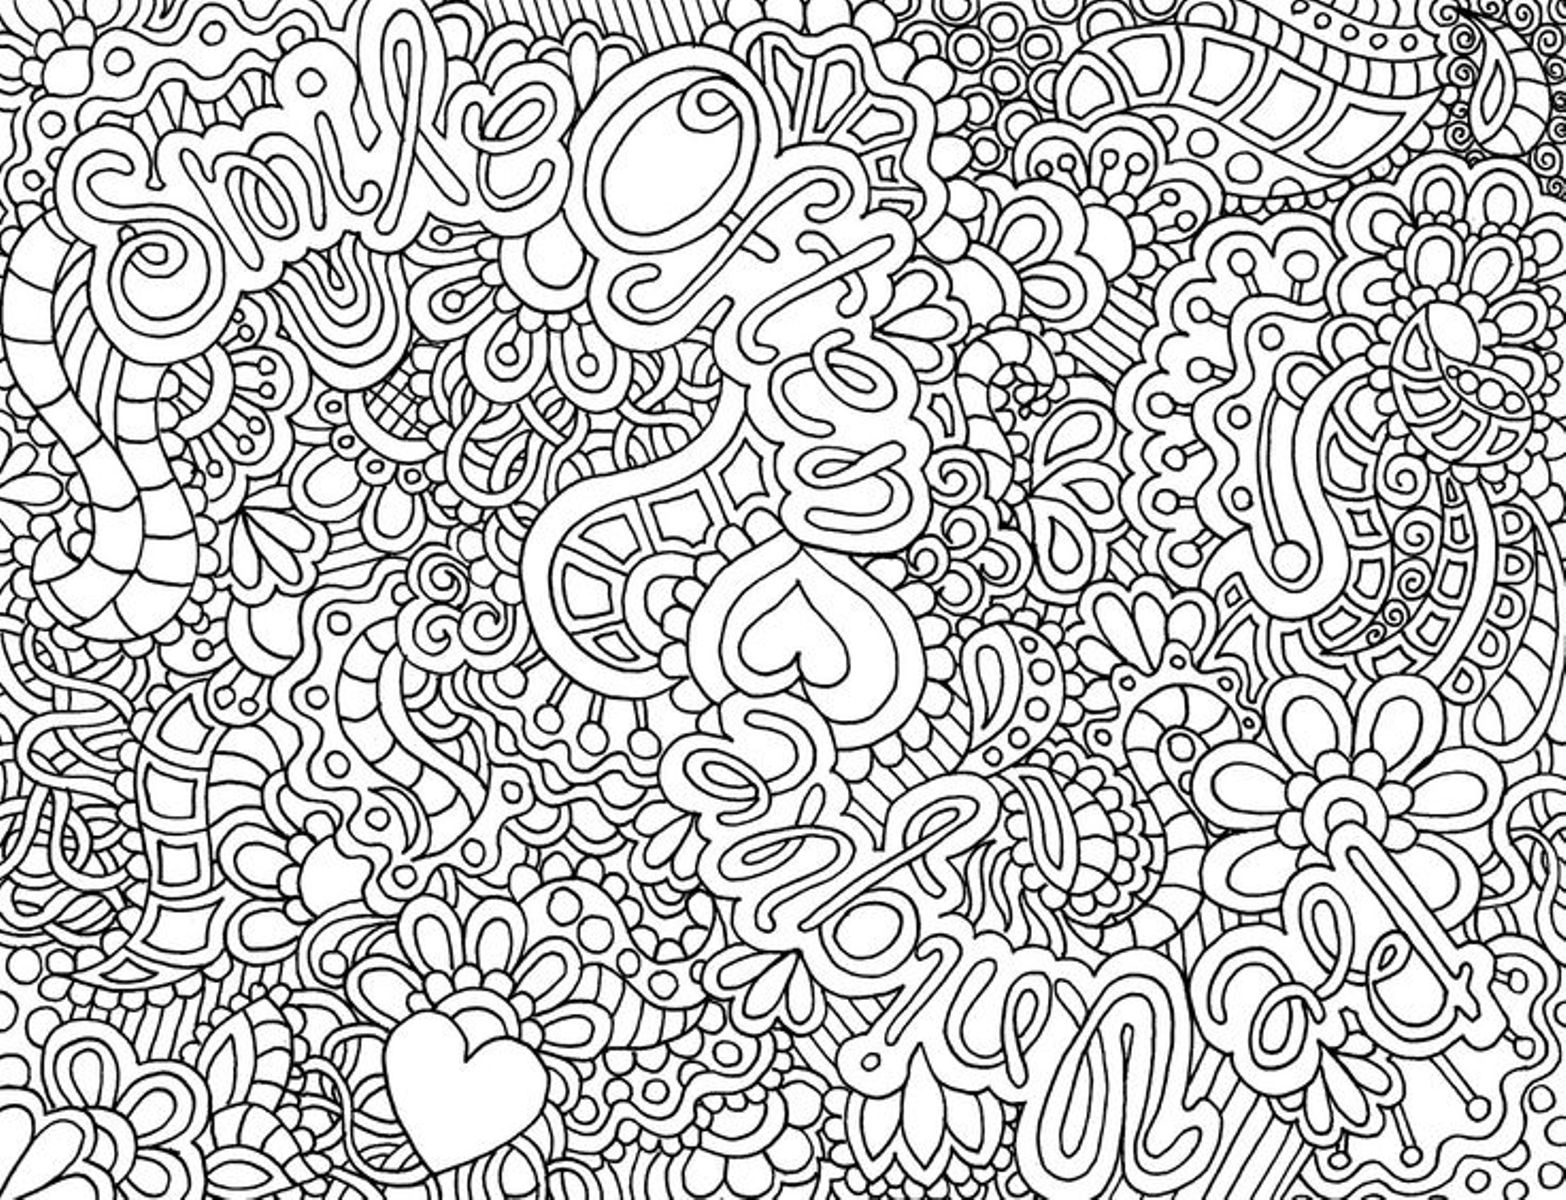 Coloring_Pages_Of_Flowers_For_Teenagers_Difficult_01